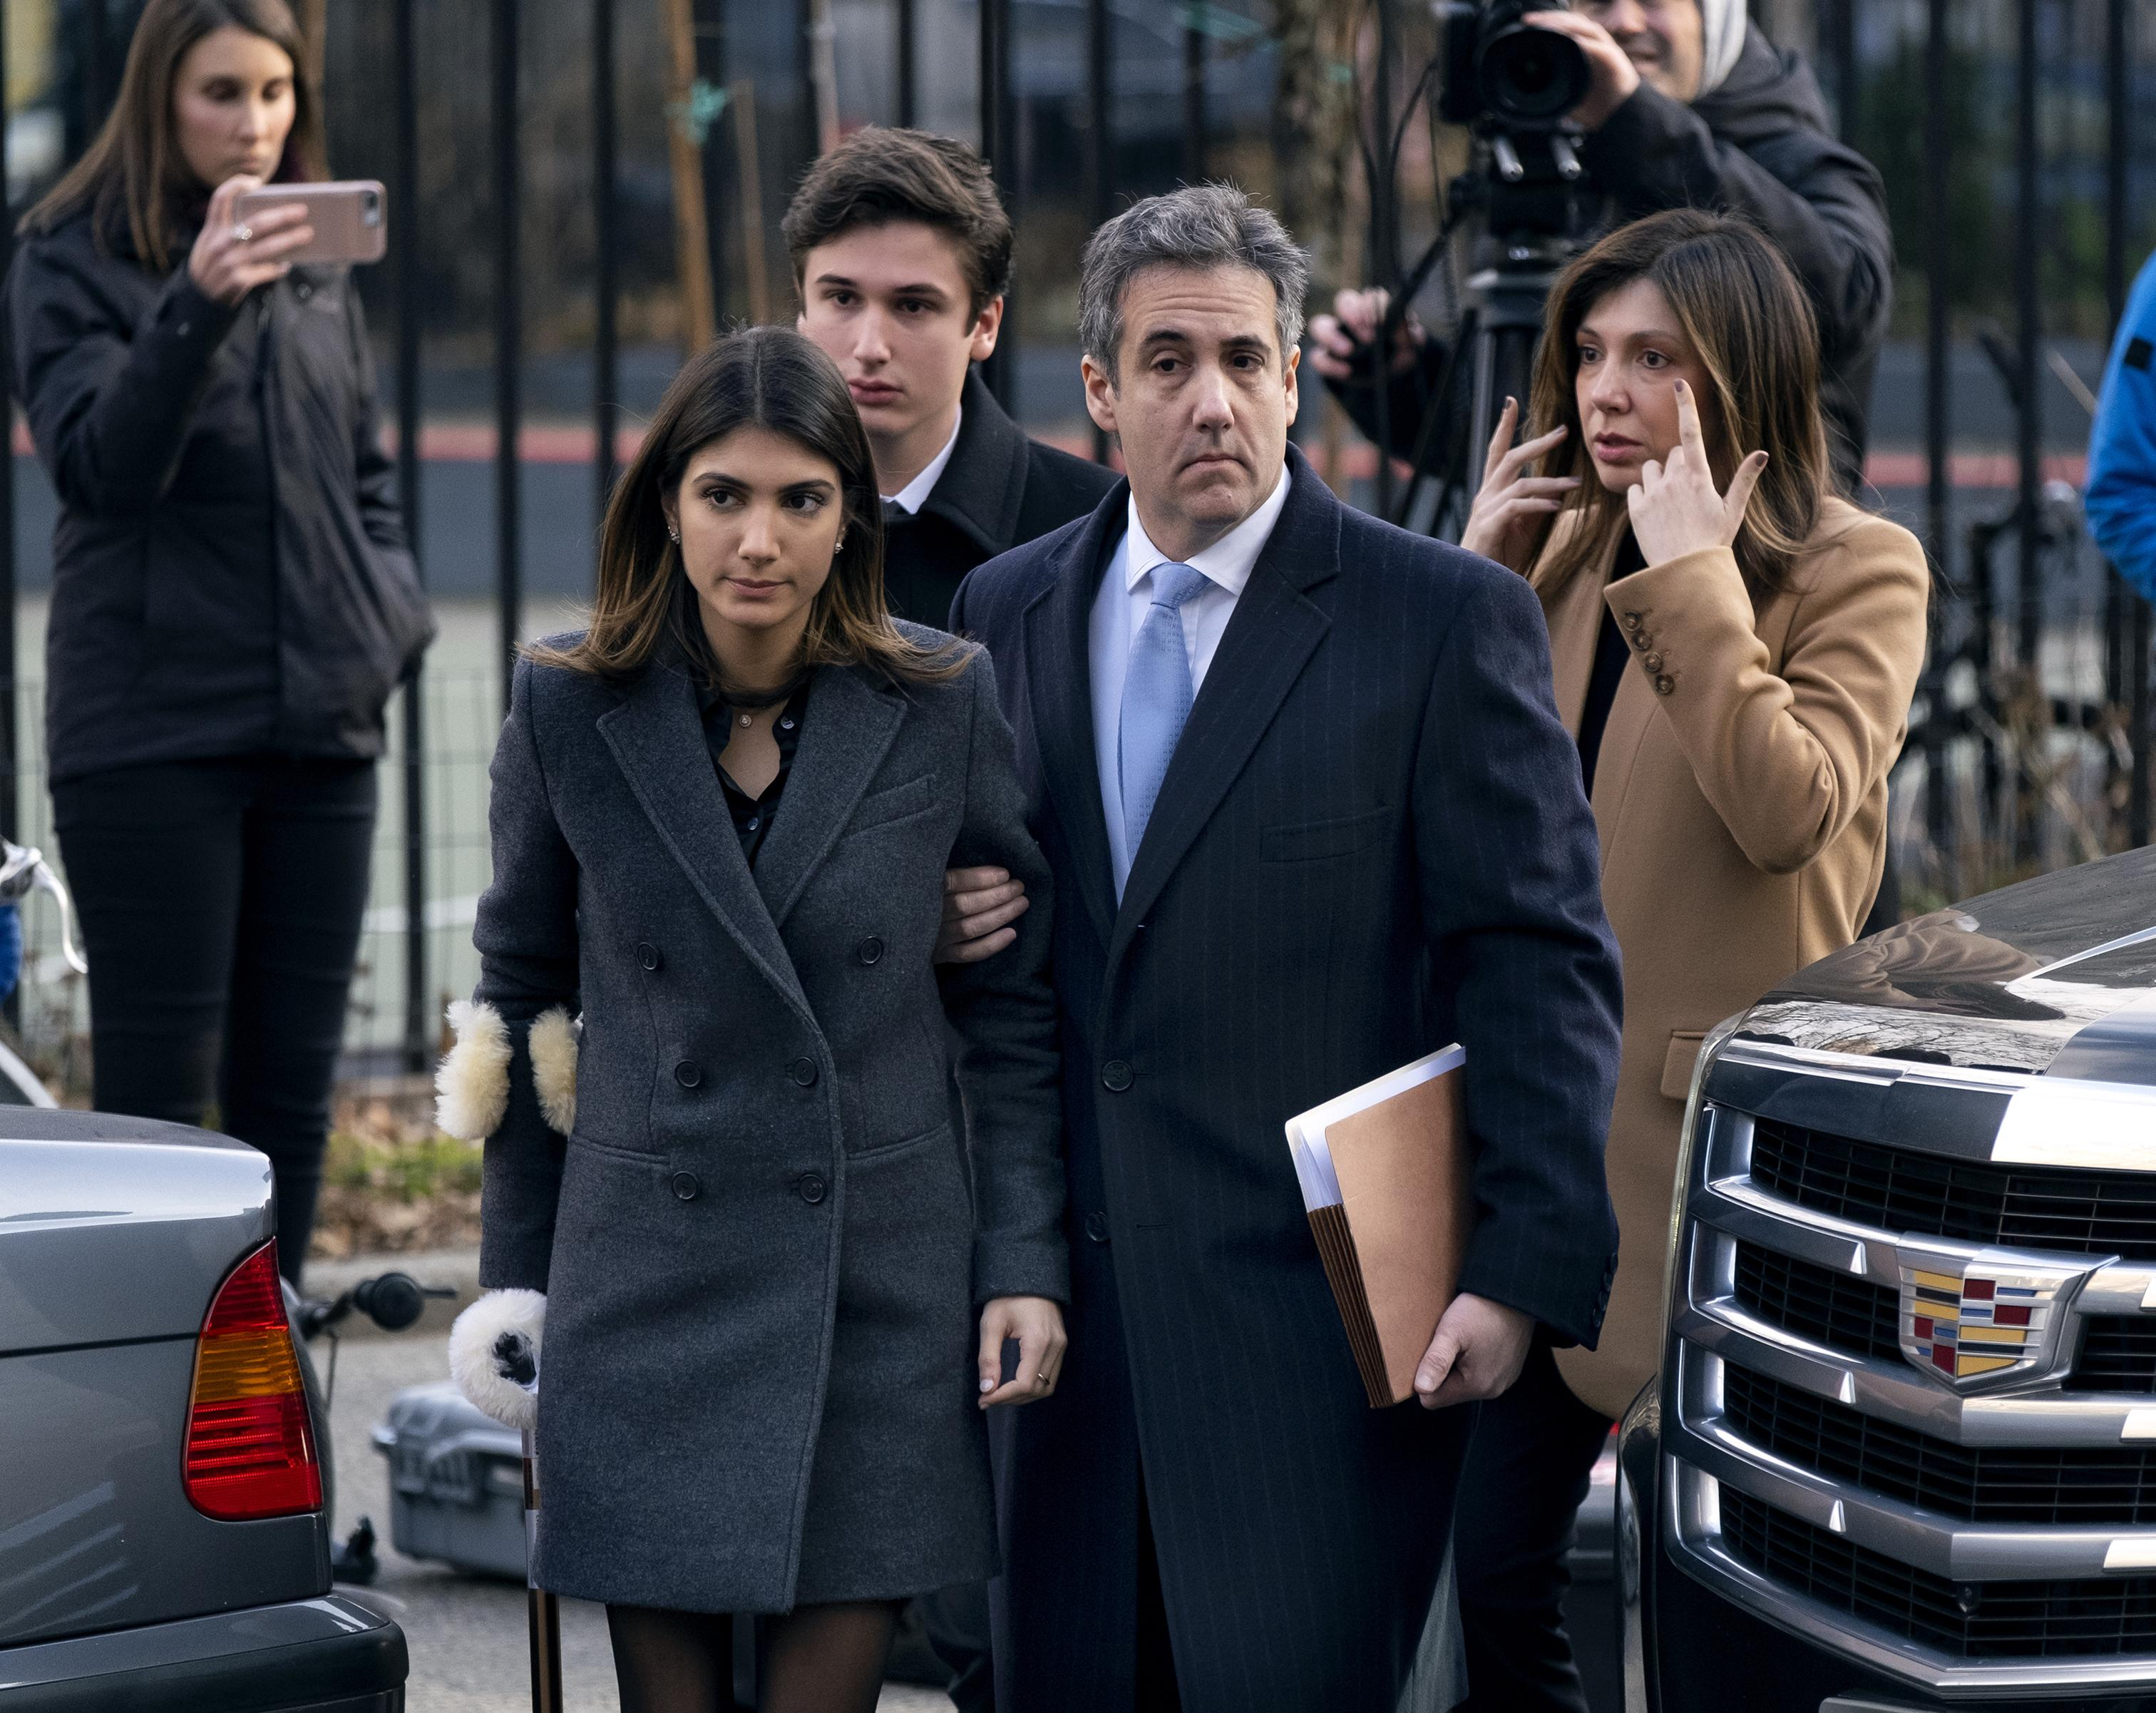 Dirty deeds': Ex-Trump lawyer Cohen gets 3 years in prison   The